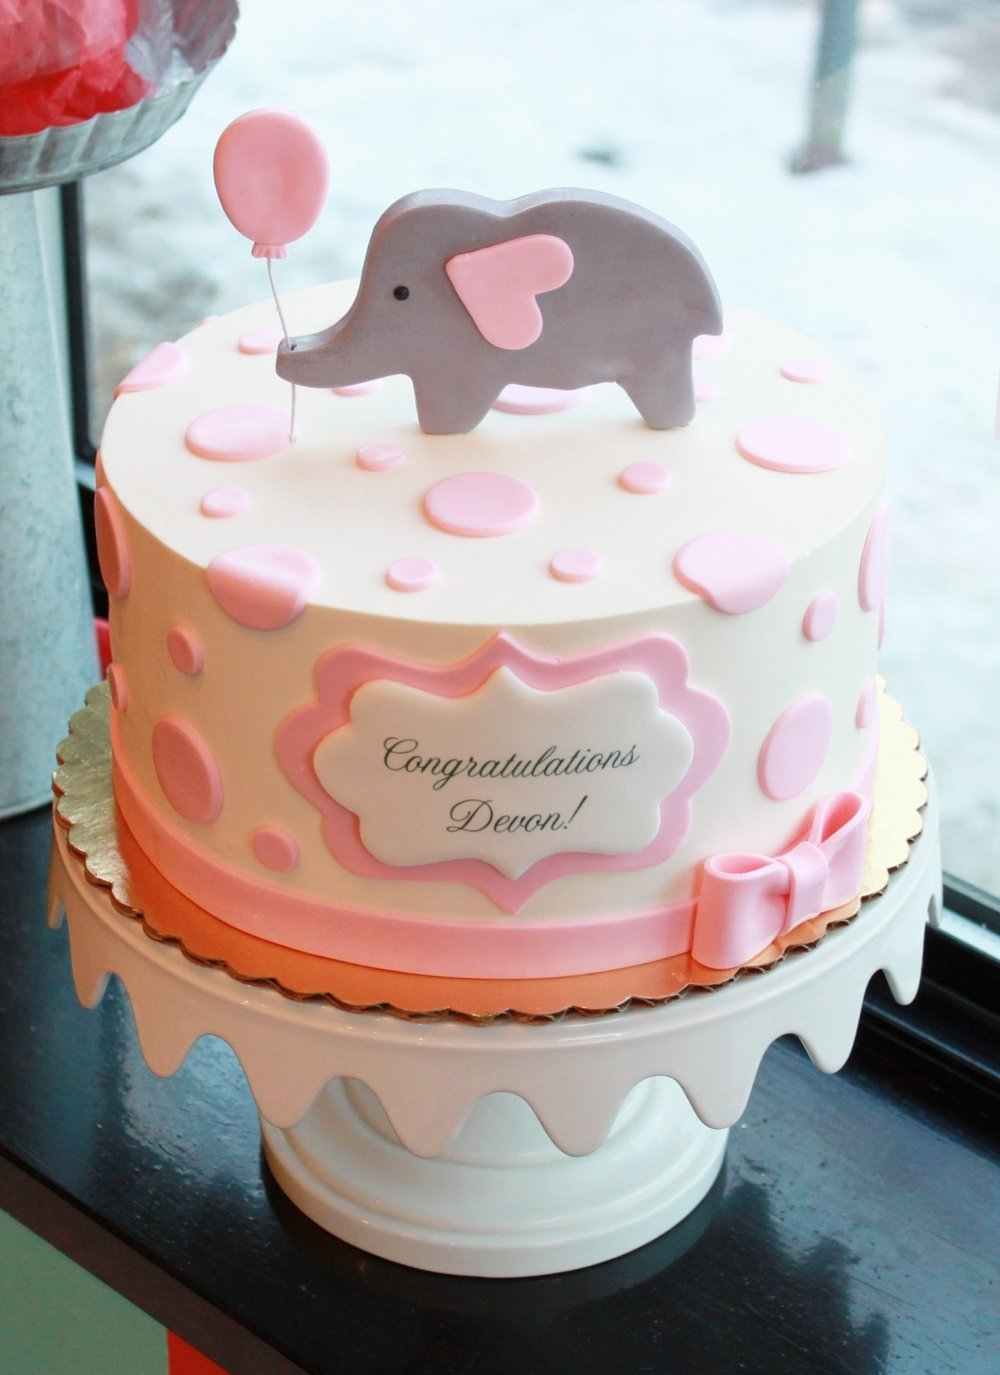 10 Wonderful Ideas For Baby Shower Cakes gorgeous baby shower cakes stay at home mum 1 2020